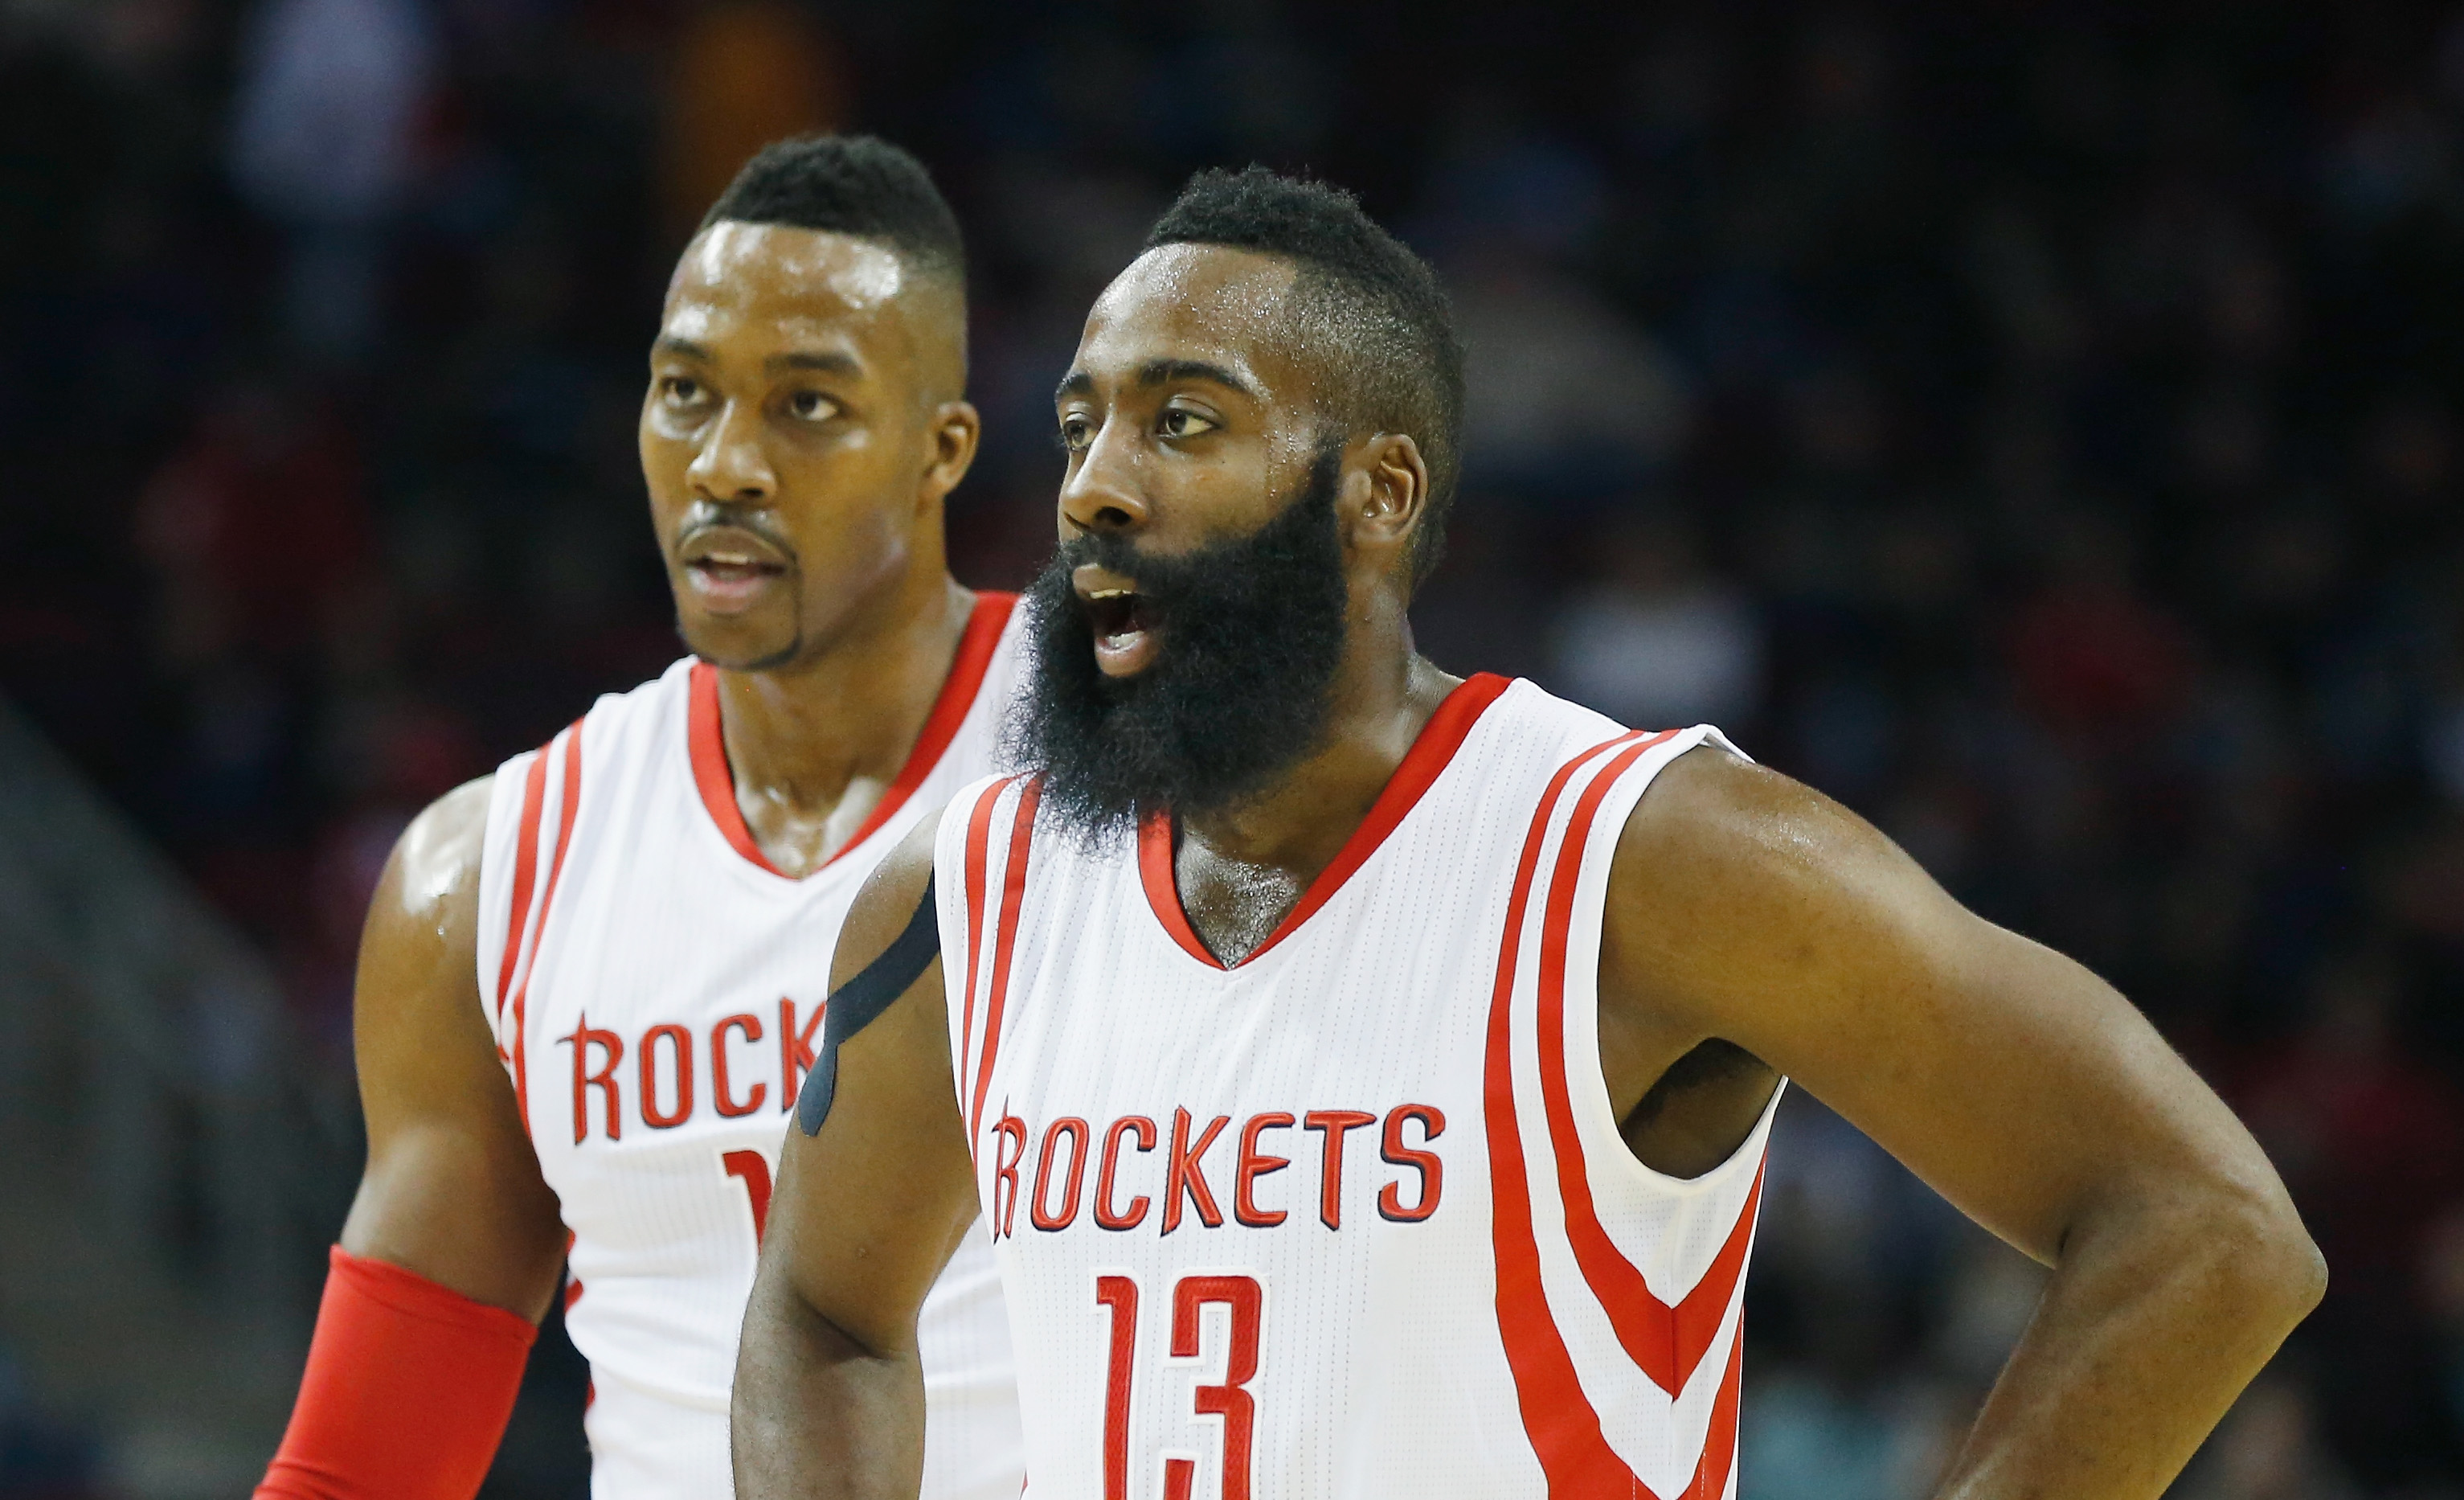 Which rapper put a curse on James Harden?